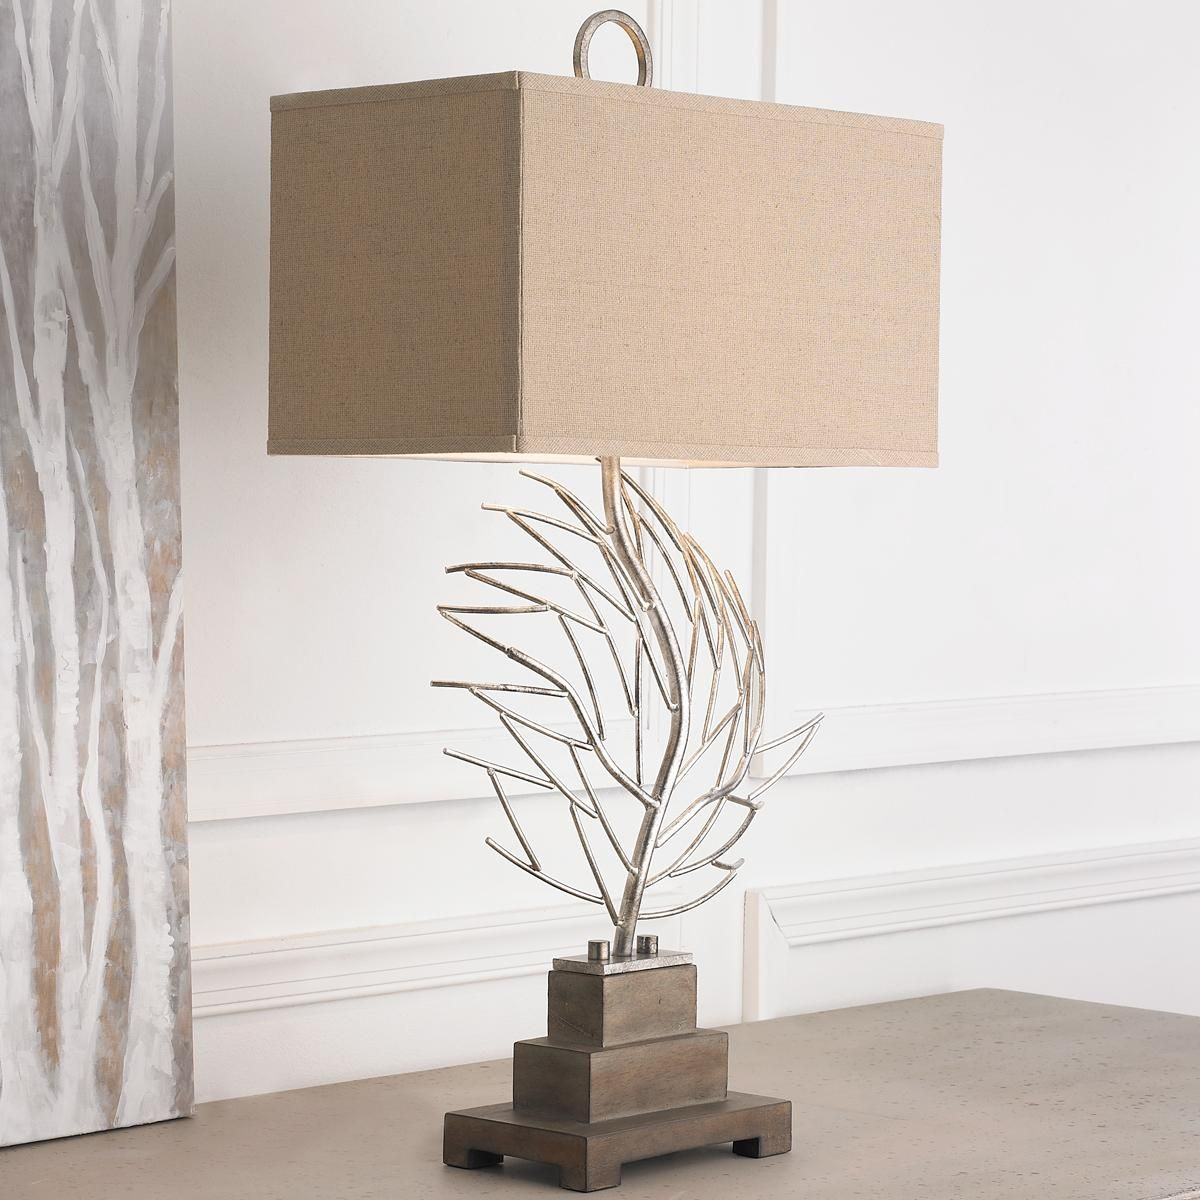 Strata Art Glass Pendant Light Silver Fan Coral Table Lamp With Elegant Modern